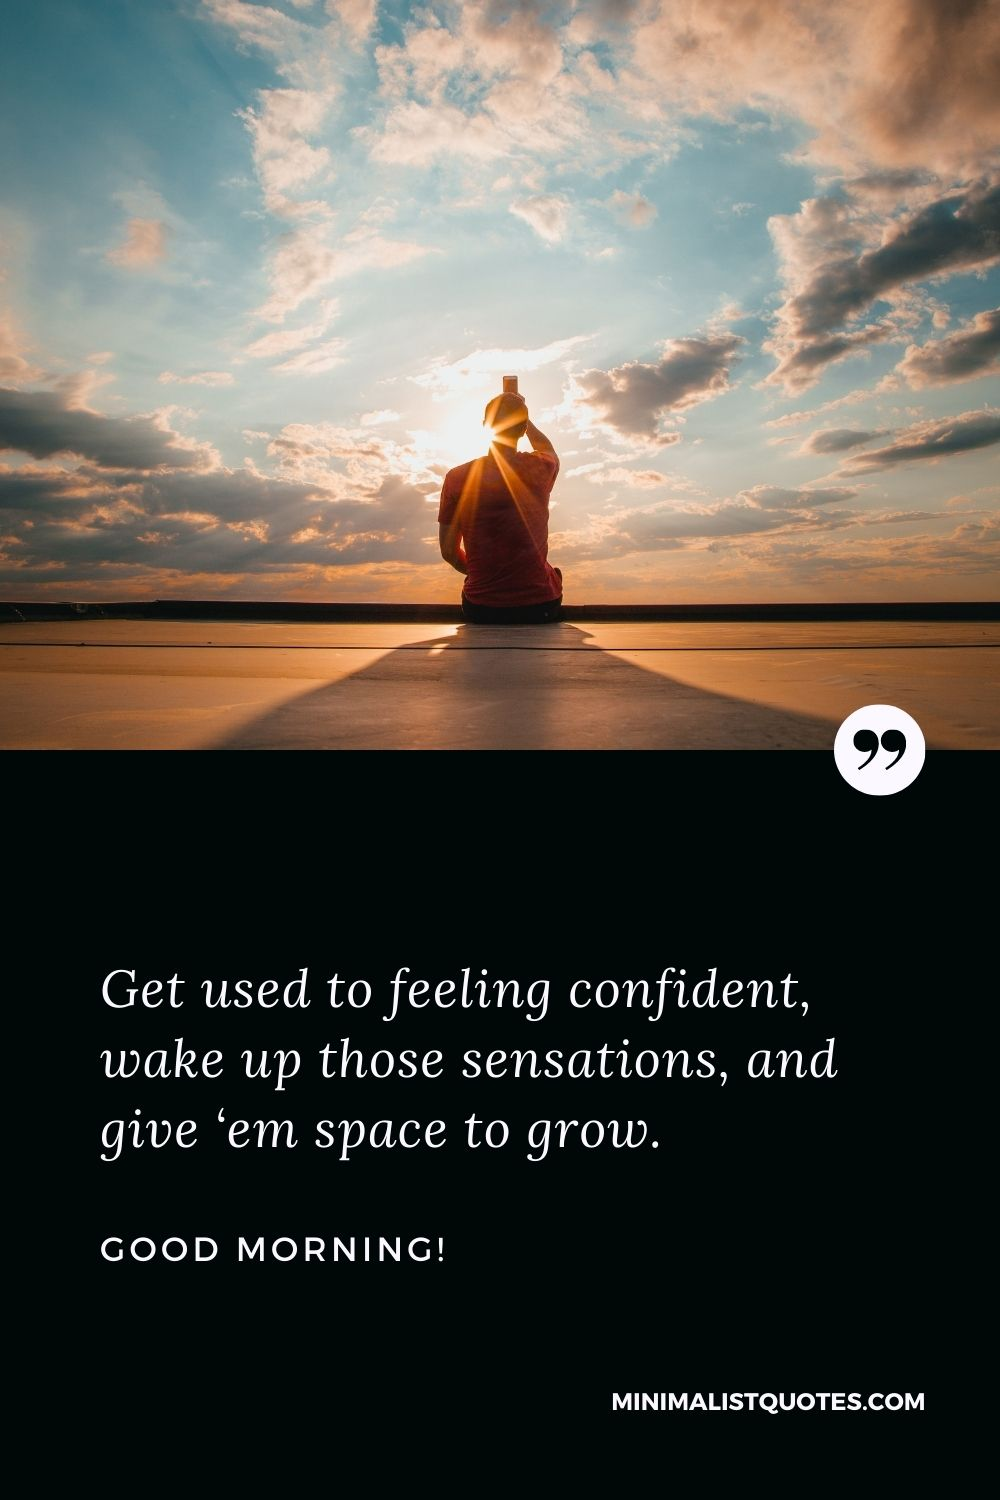 Good Morning Wish & Message With HD Image: Get used to feeling confident, wake up those sensations, and give 'em space to grow.